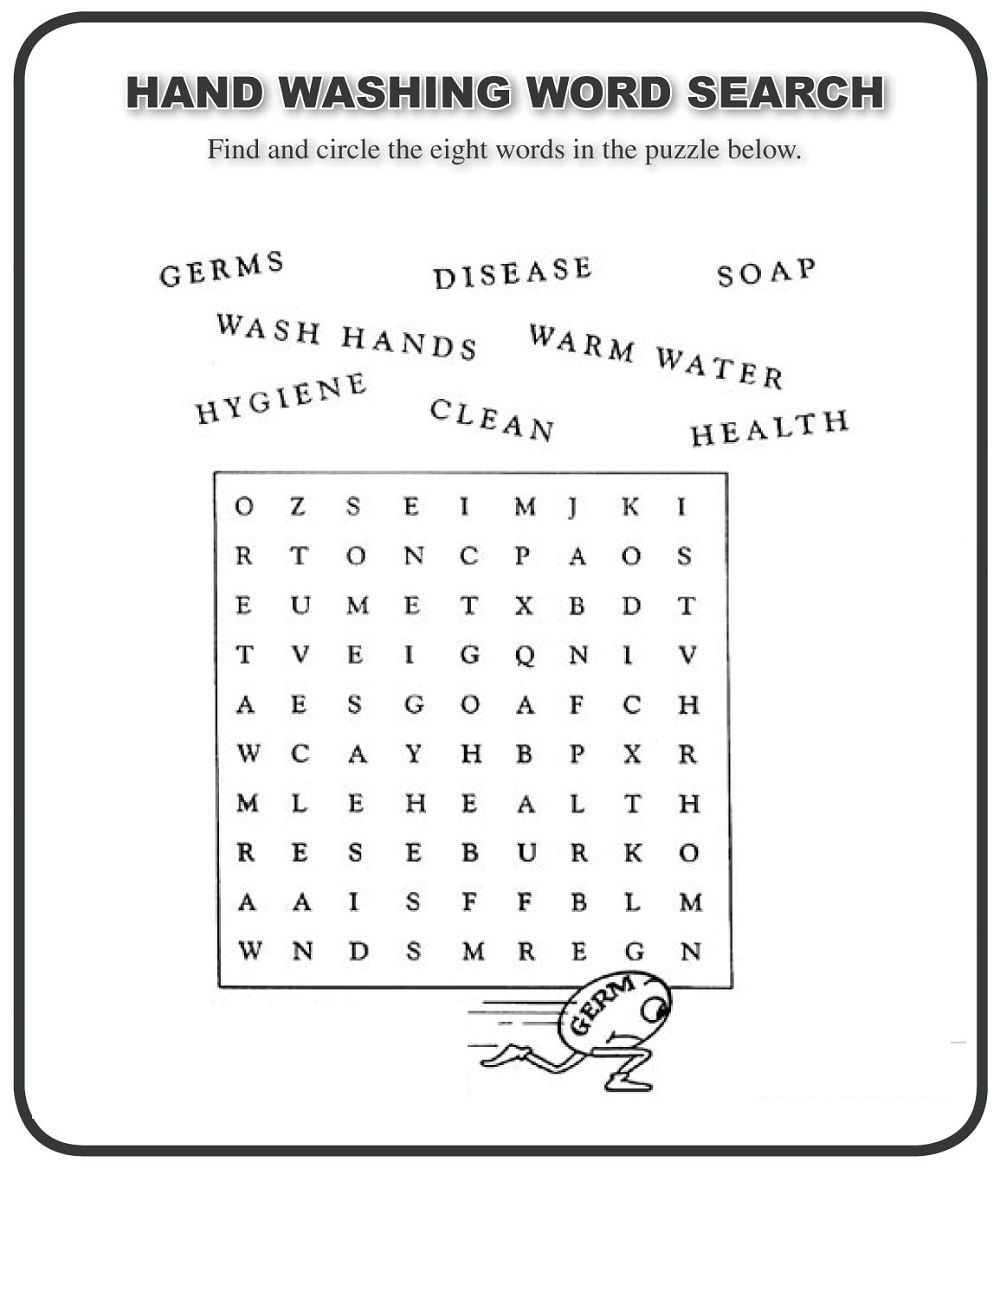 Pin By Krishna Otero On Worksheets For Kindergarten In 2021 Free Printable Word Searches Word Find Word Search Puzzles Printables [ 1316 x 1000 Pixel ]